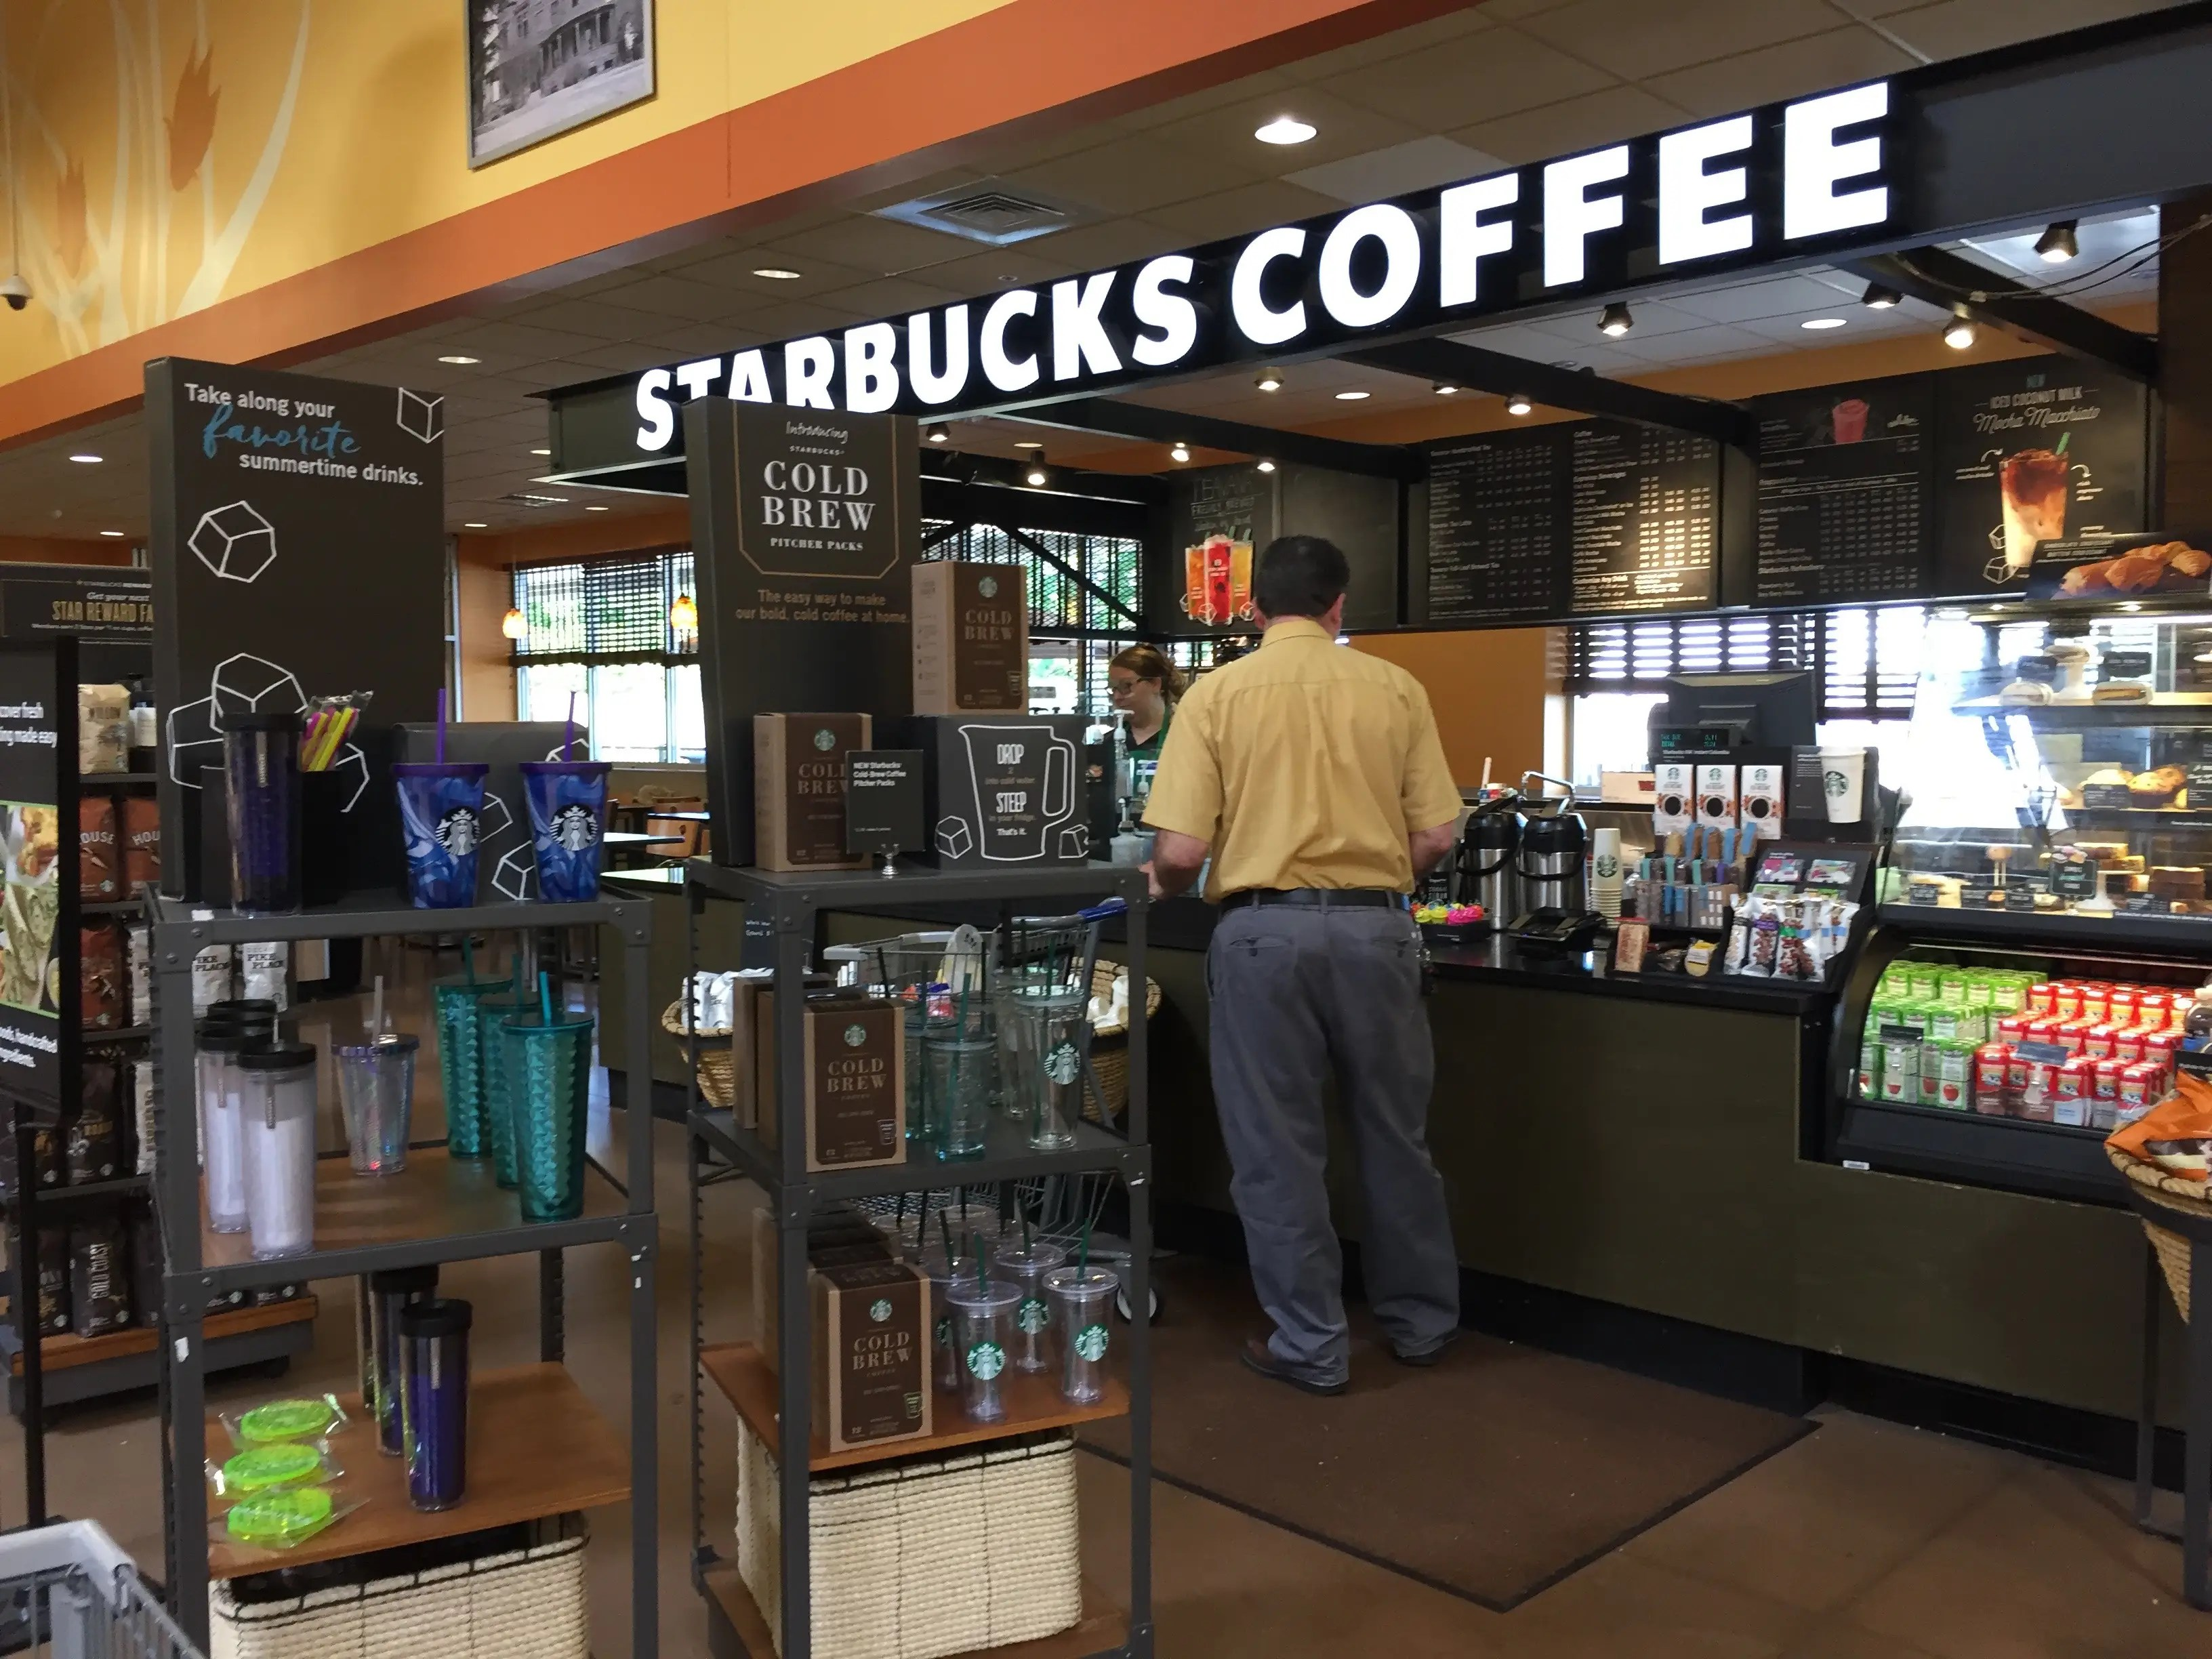 Starbucks is nearby so you can grab a drink before you shop.